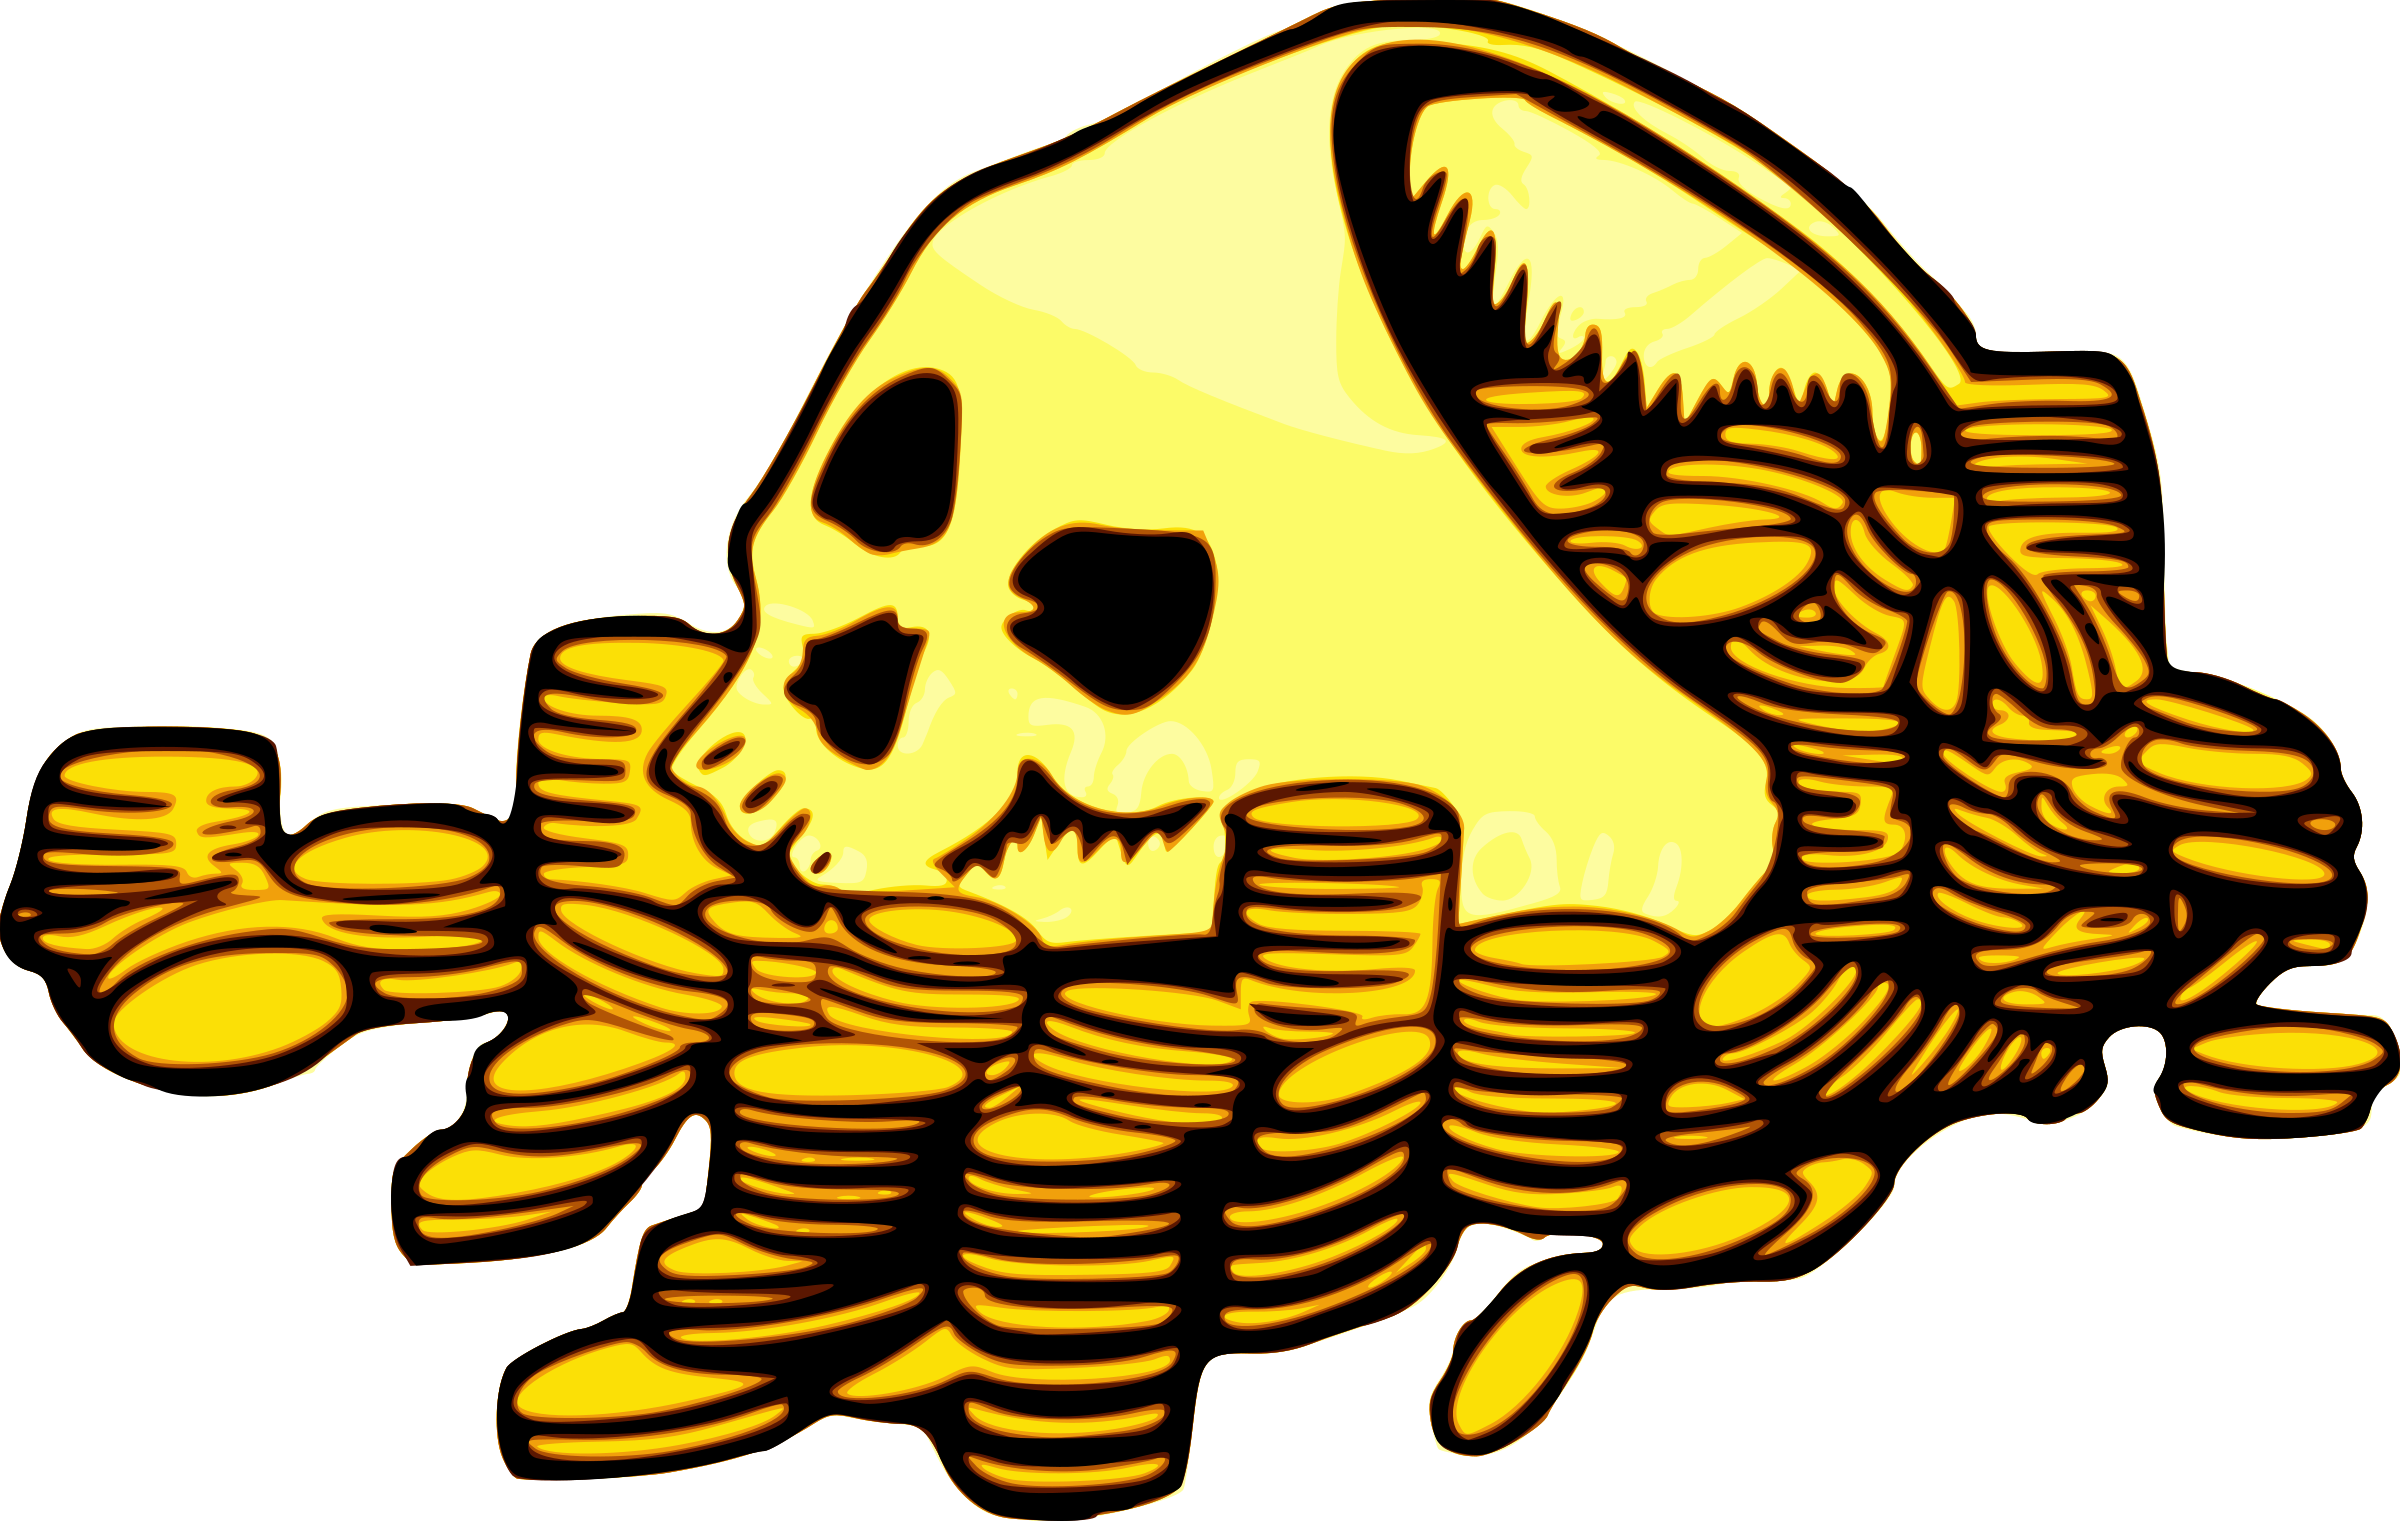 Skull & Money by j4p4n